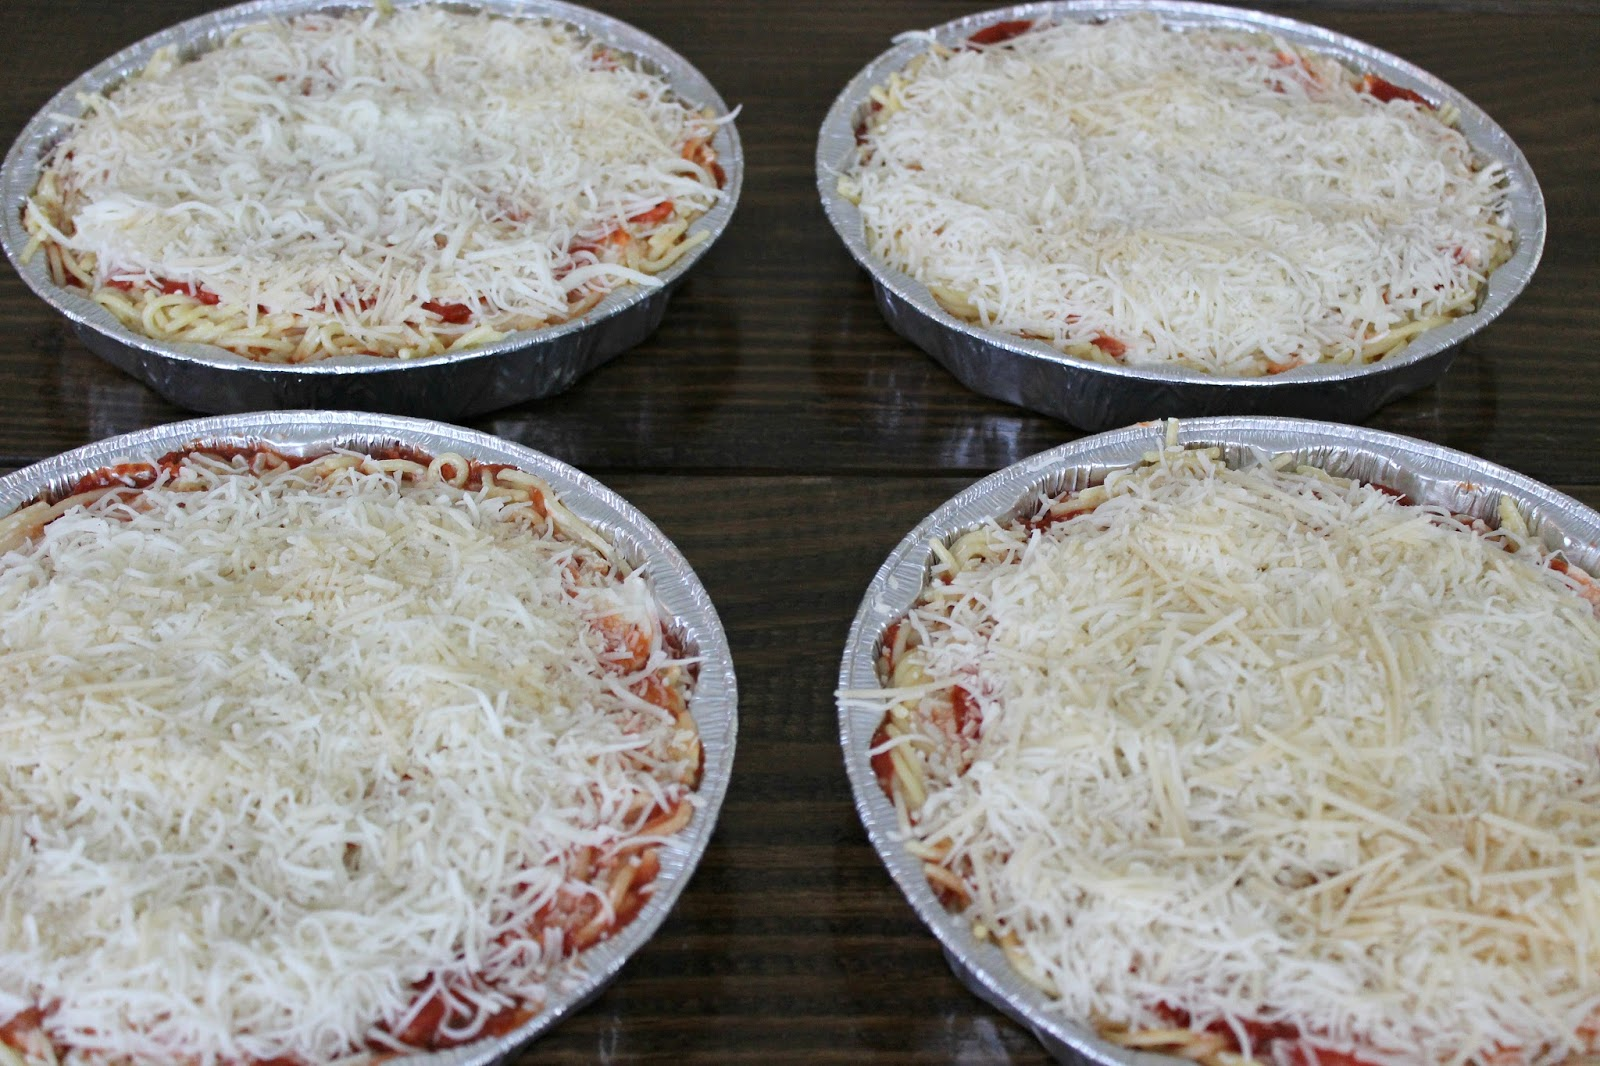 baked spaghetti freezer meals